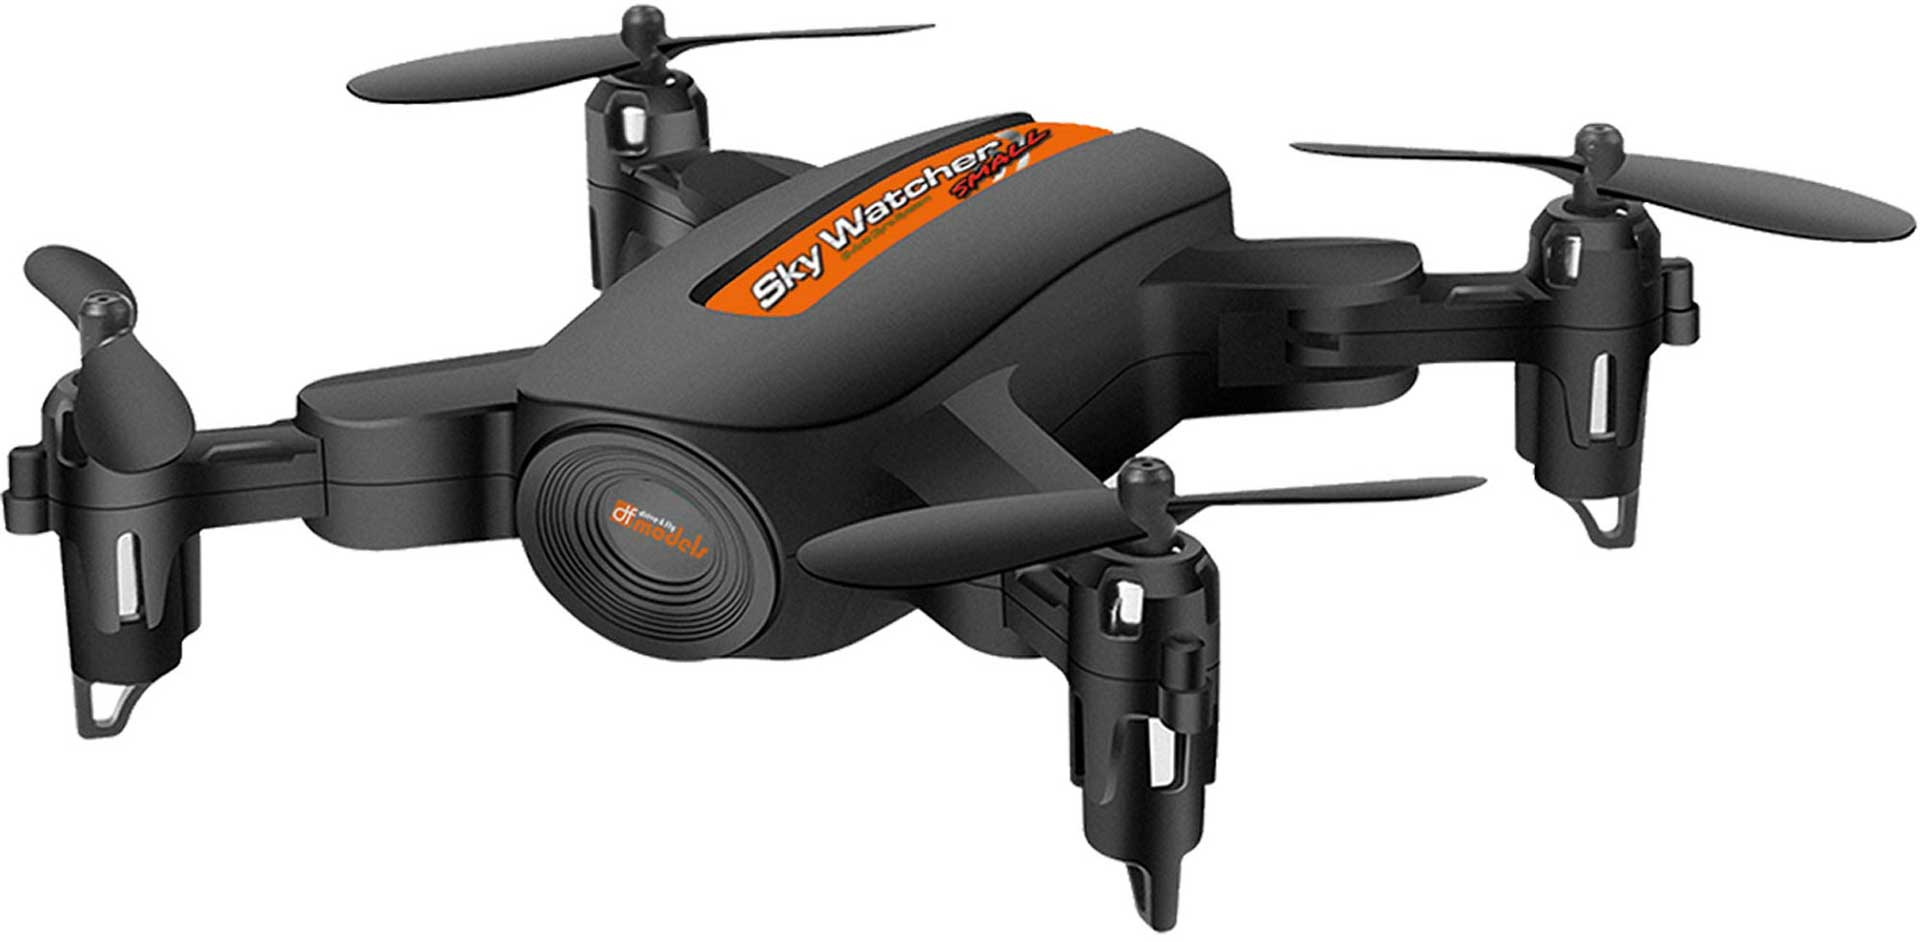 DRIVE & FLY MODELS SkyWatcher Small Quadrocopter mit Höhenstabilisierung